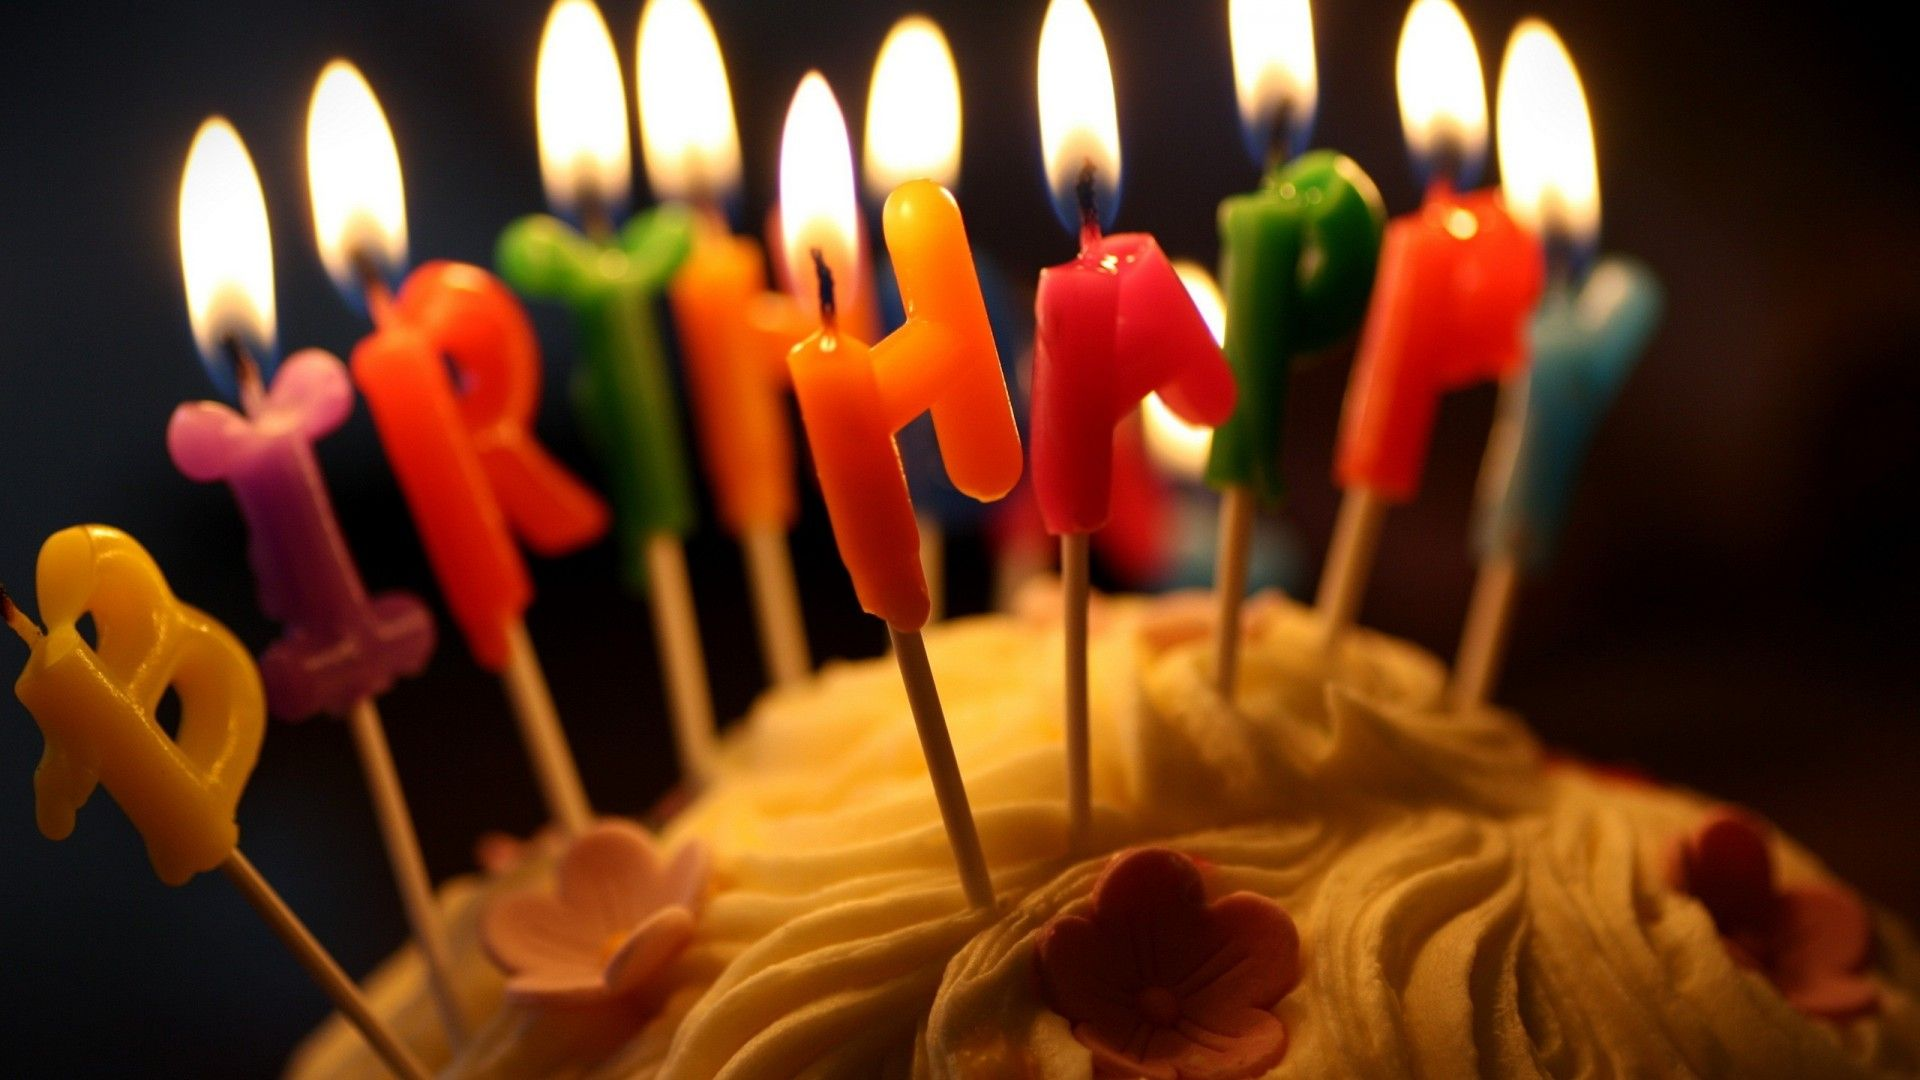 Birthday Candles Wallpaper And Background Happy Birthday Candles Birthday Cake With Candles Candles Wallpaper